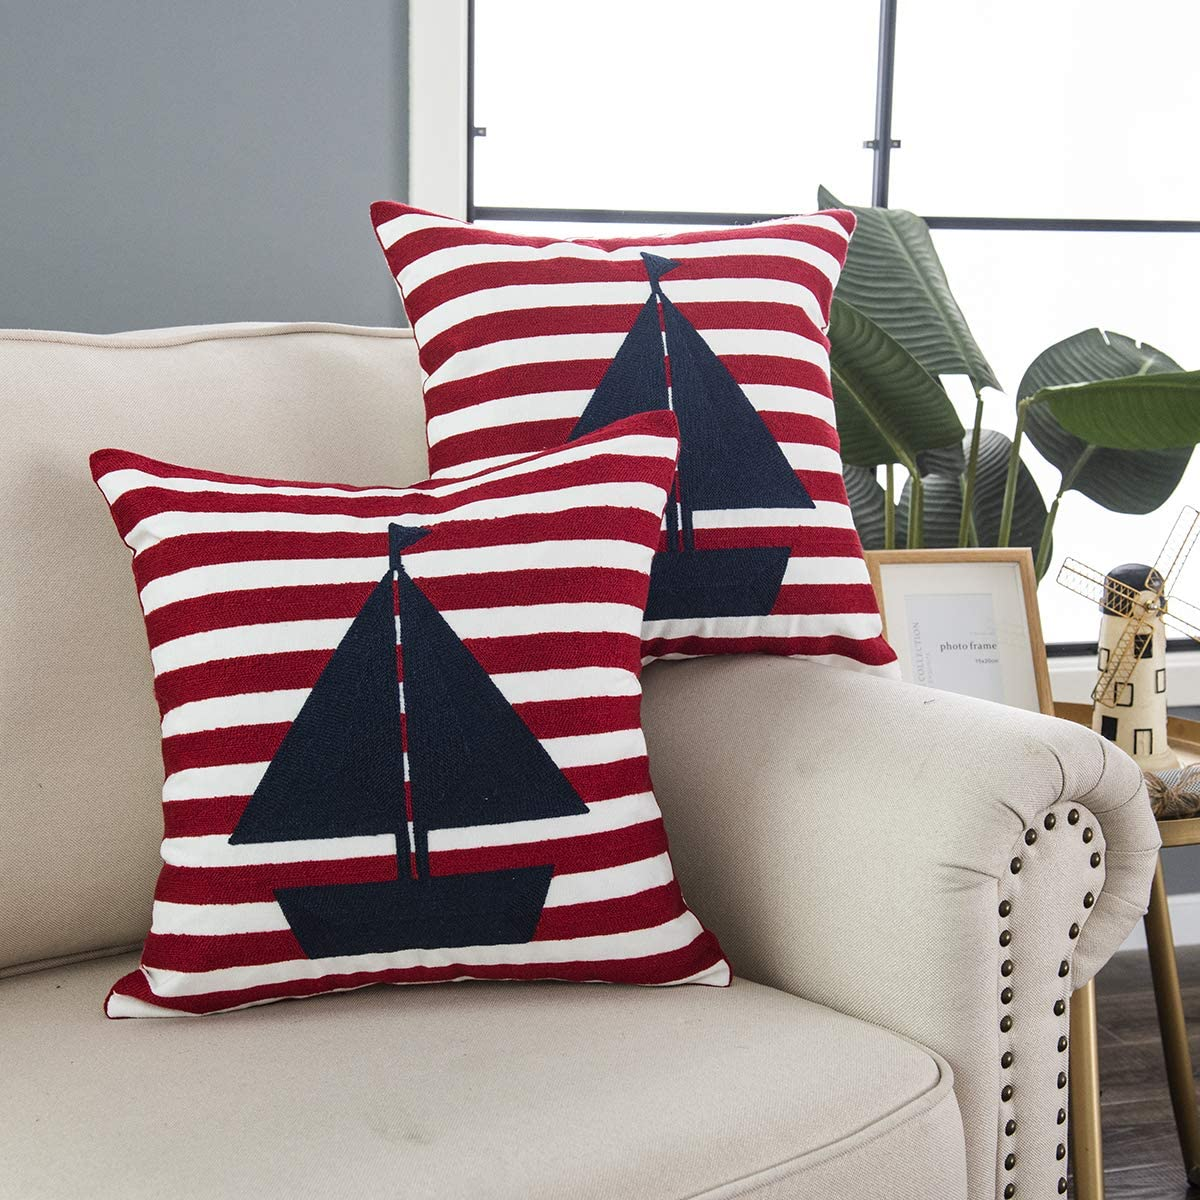 """Taisier Home Sailing Boat Pattern Square Sofa Throw Pillow Cover Set of 2 Pieces,Nautical Theme Embroidered Throw Pillow Covers Cushion Cases Textured (18""""x18"""",2pack, Navy&Red)"""